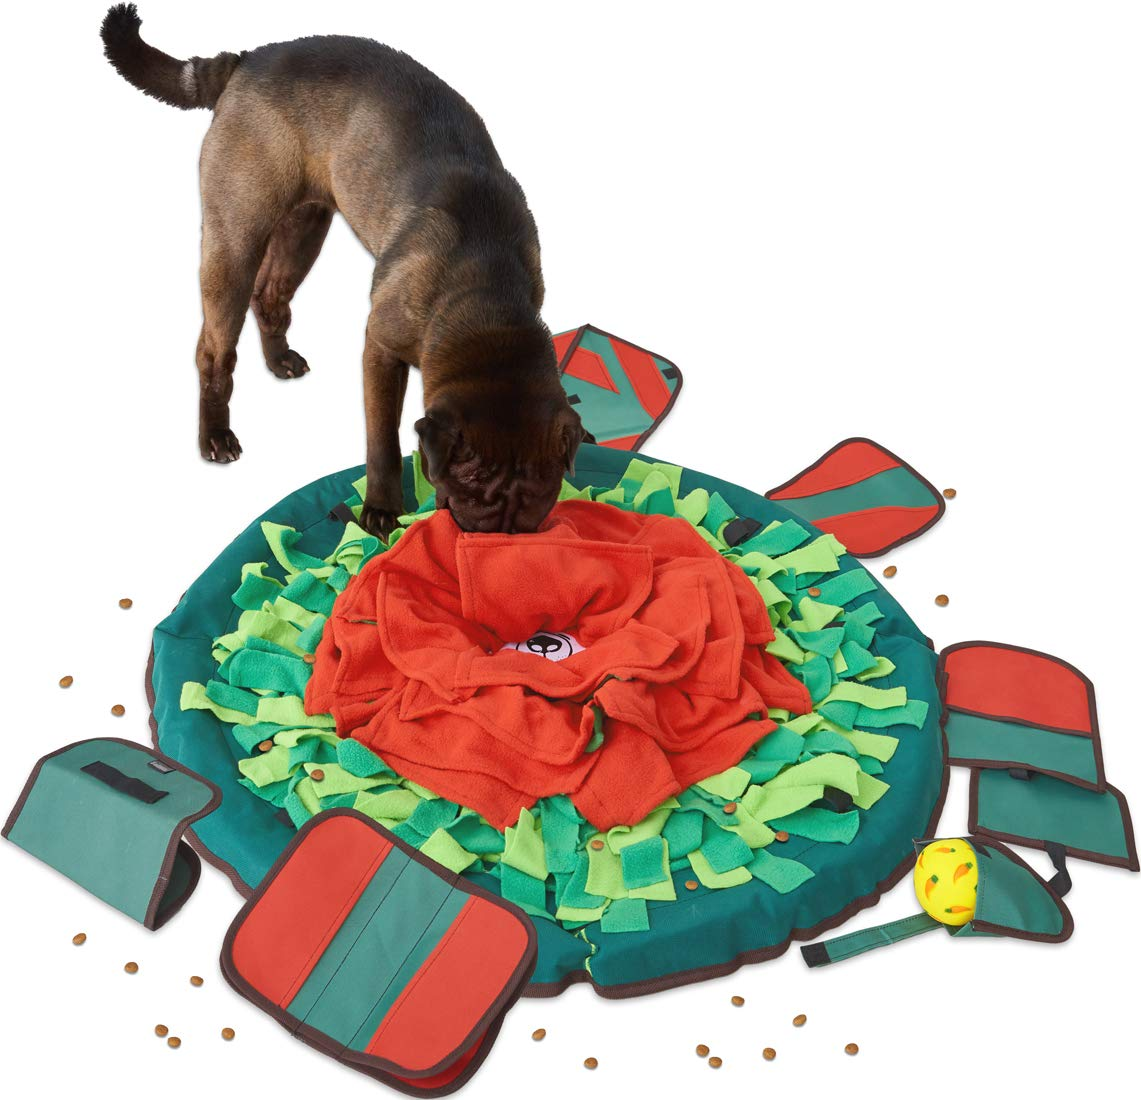 SNiFFiz SmellyMatty Snuffle Mat for Dogs - Interactive Food Puzzle Toys Package ( Large Nosework Blanket + 5 Treat Puzzles ) - Slow Feeding Games with Stress Relief for Boredom by Sniffiz